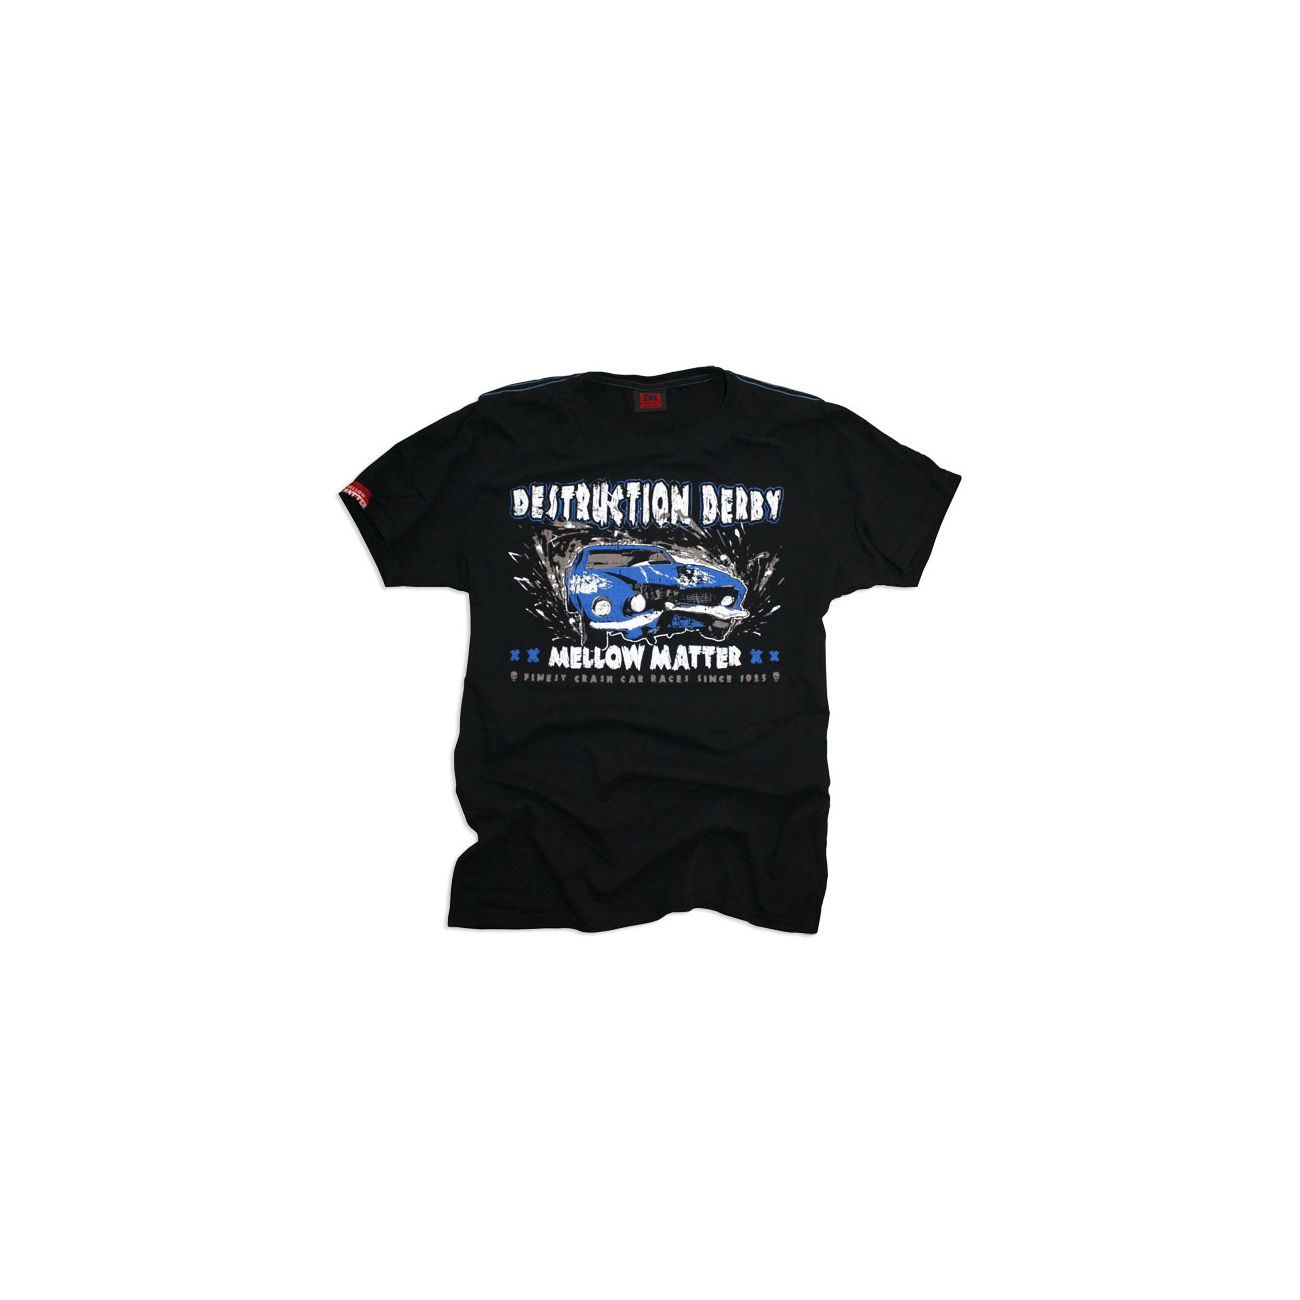 Mellow Matter, Destruction Derby T-Shirt 0